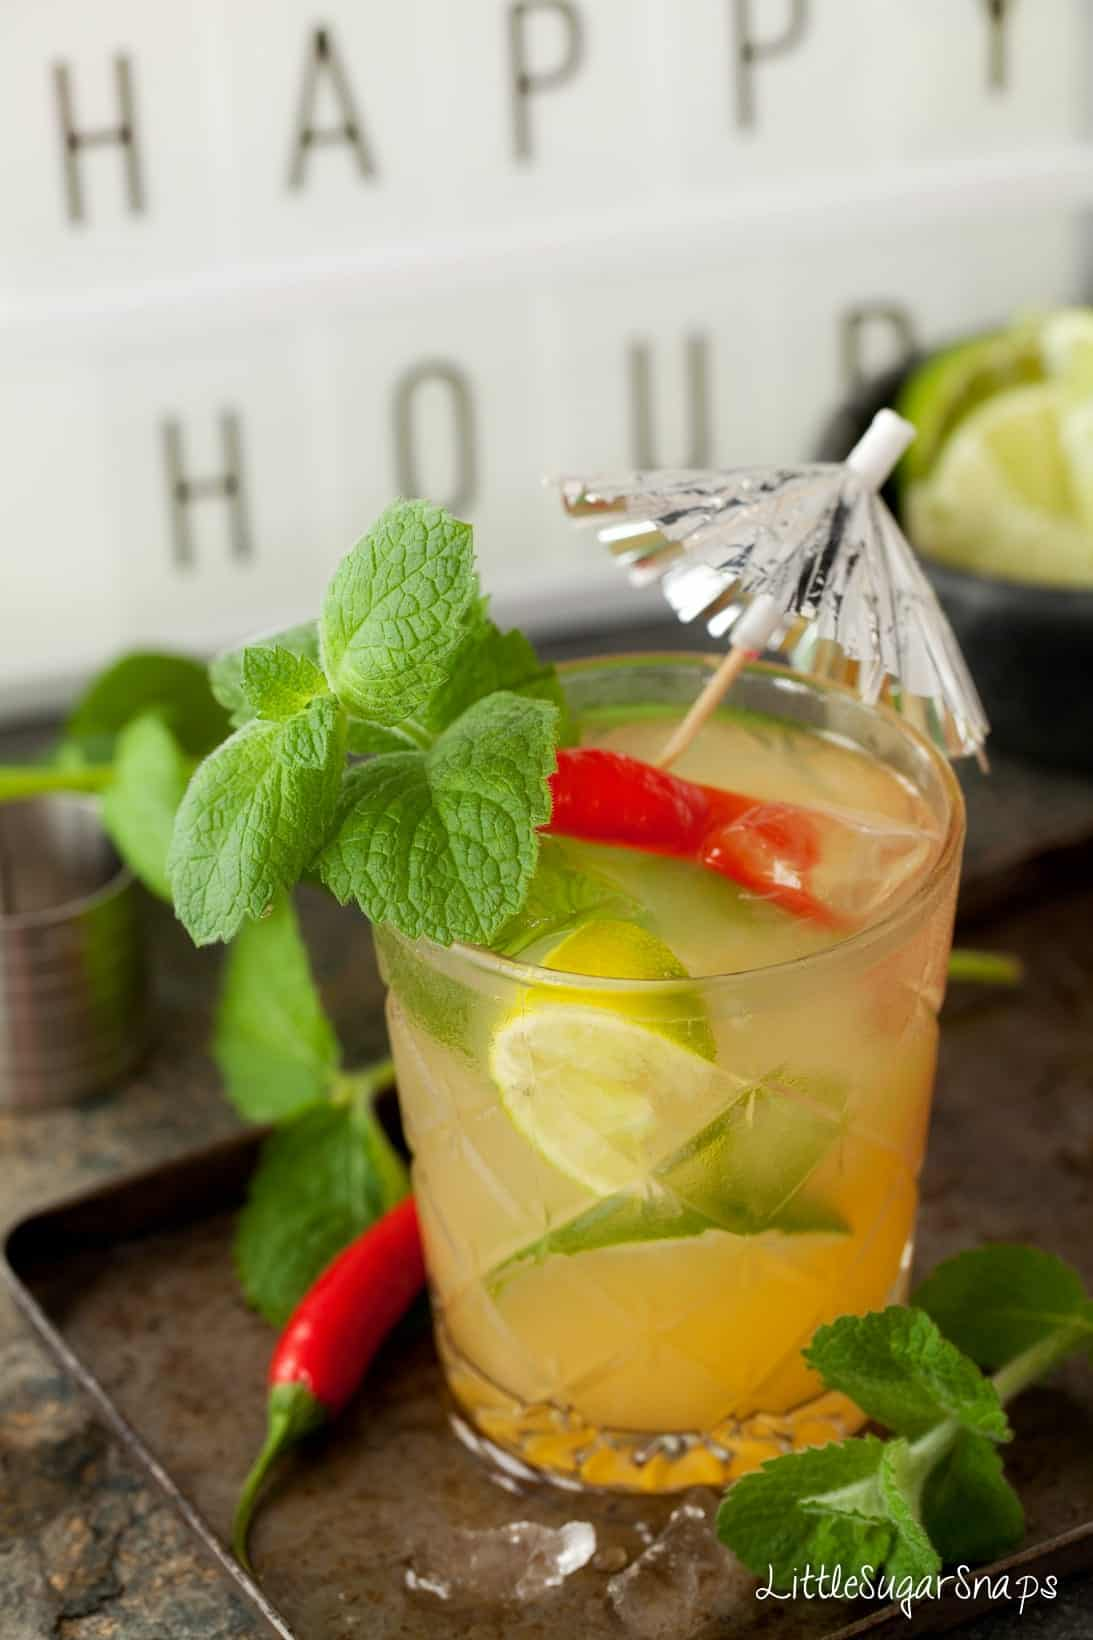 A cocktail made with chilli vodka decorated with red chilli, lime and lime.